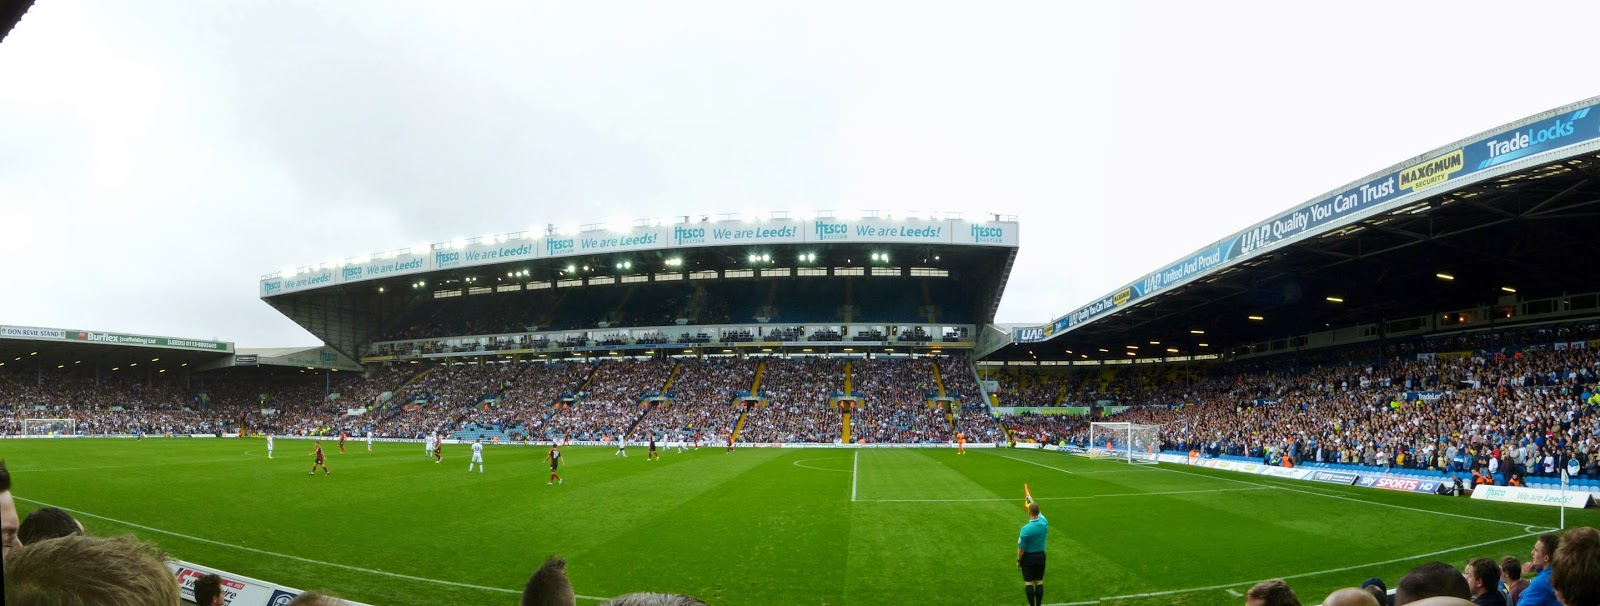 Elland road intimidating atmosphere albums